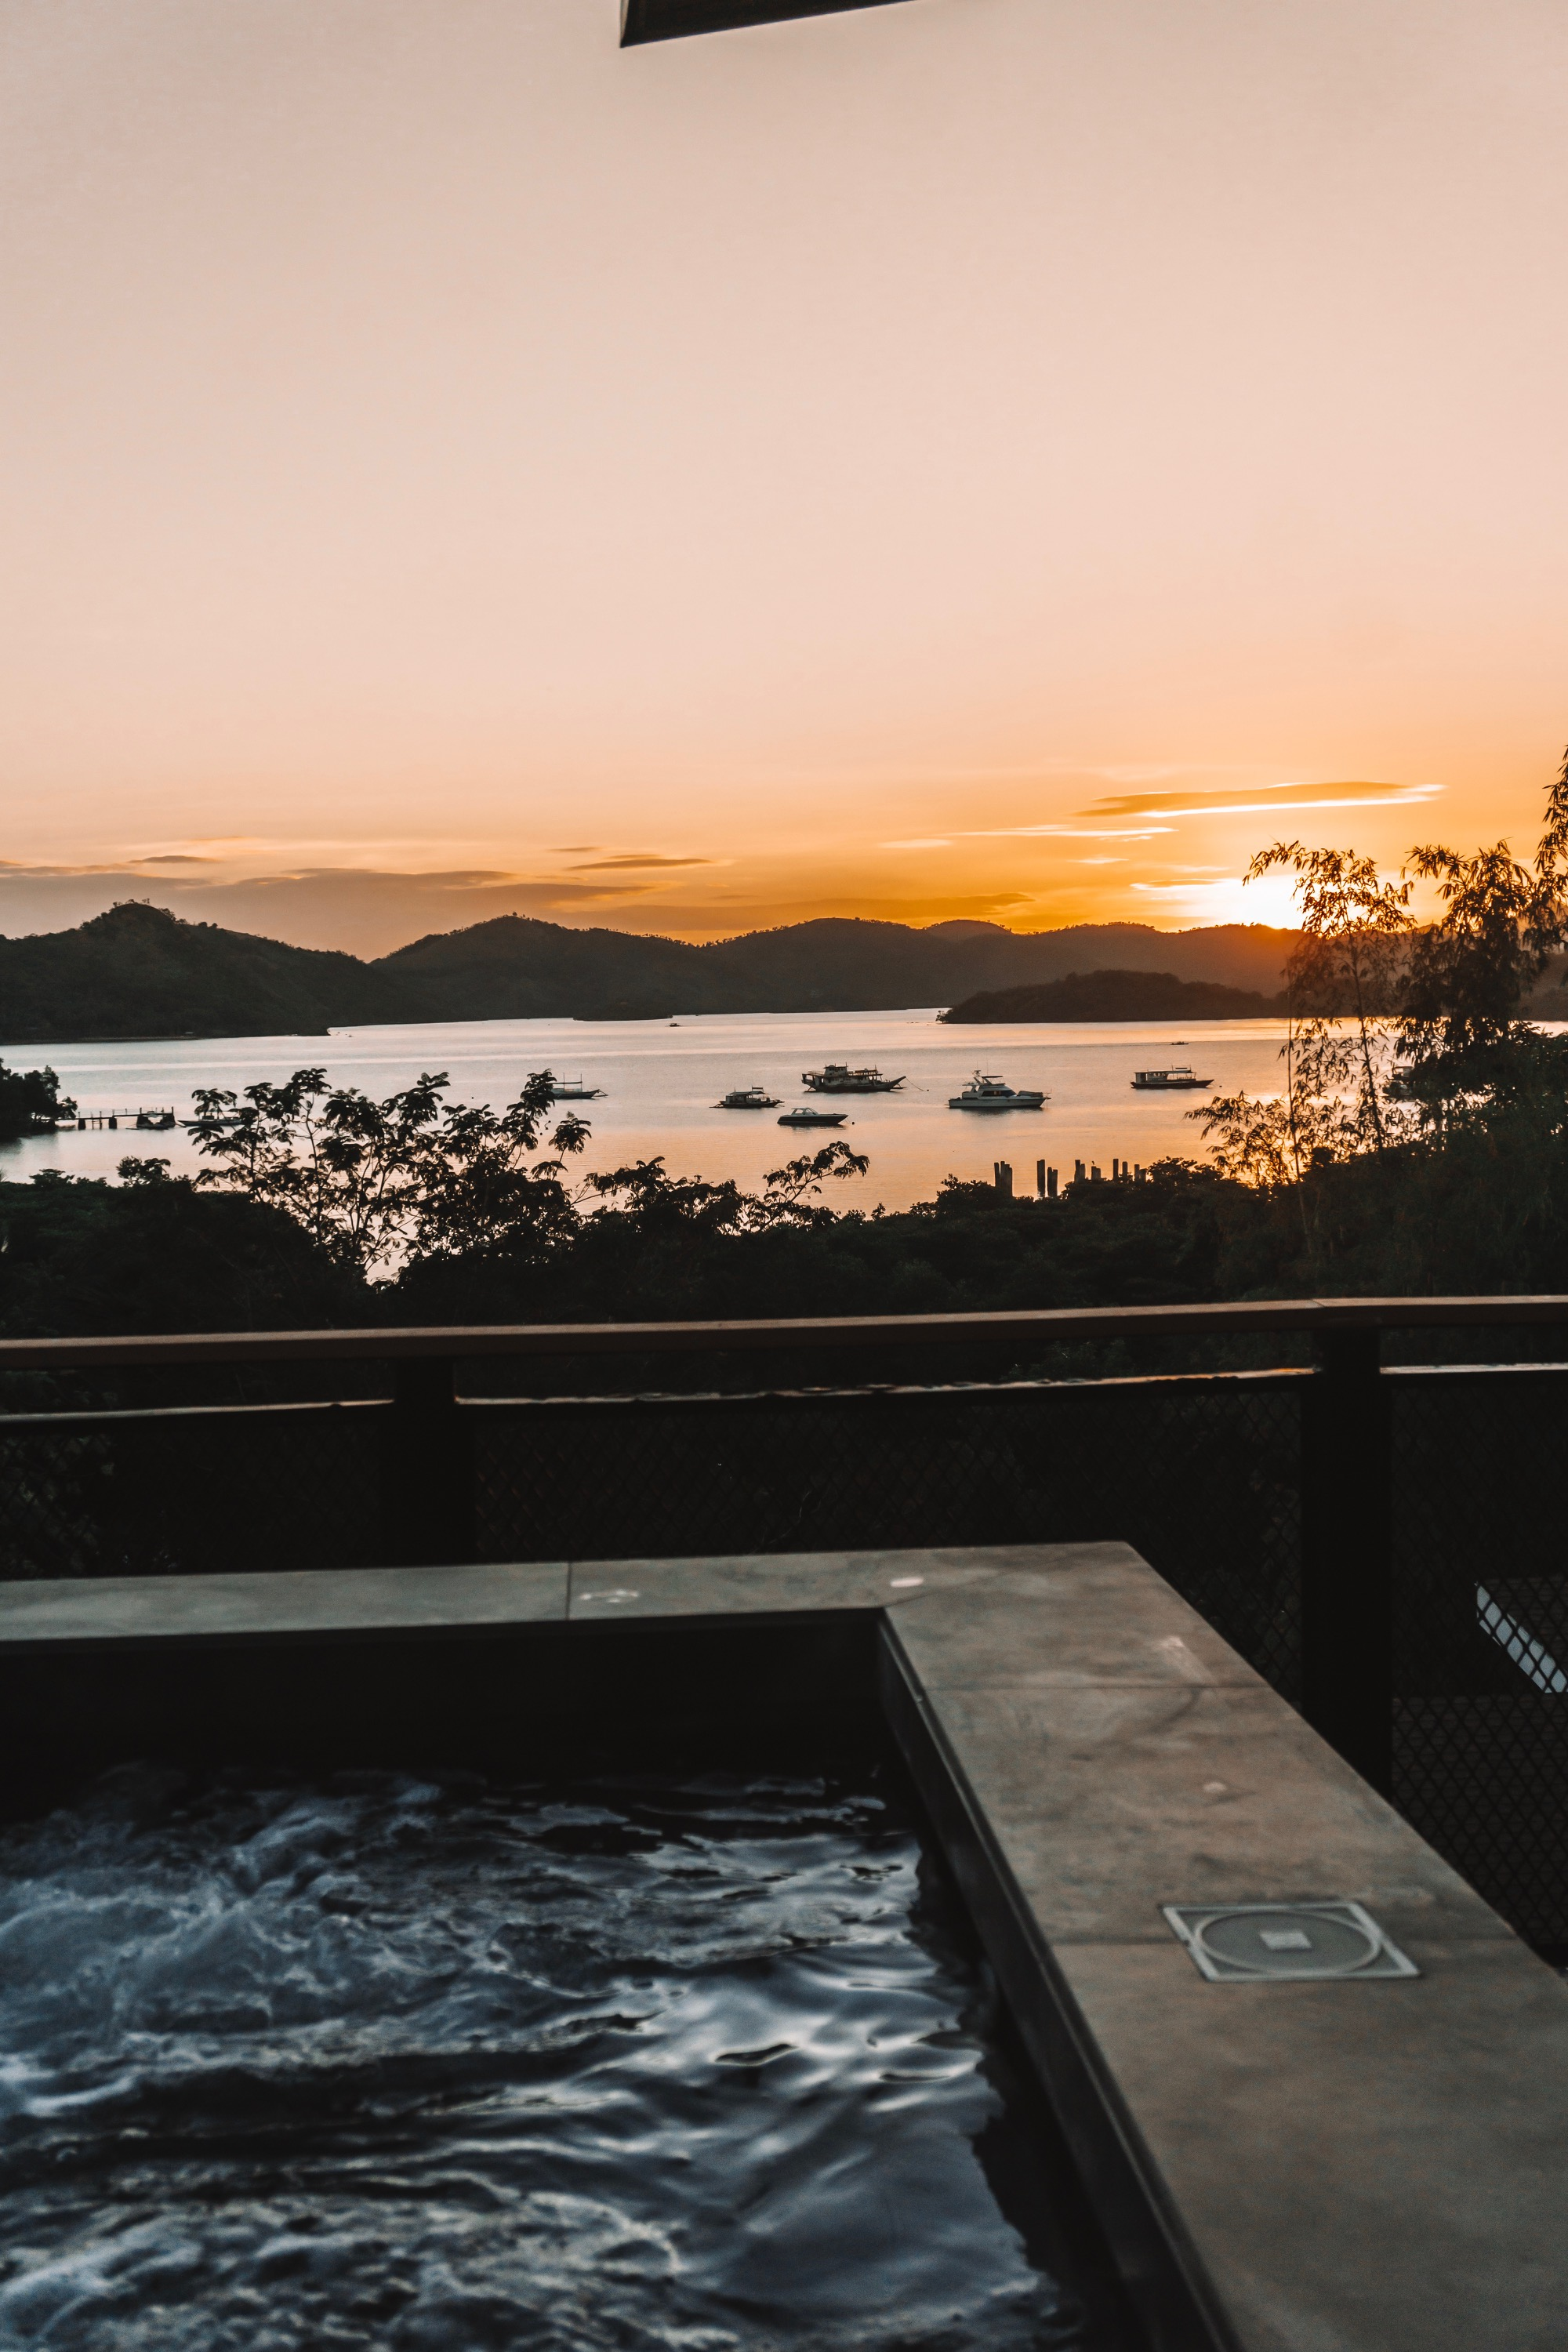 Coron Travel Itinerary: Things to do in Coron - Sunset Views